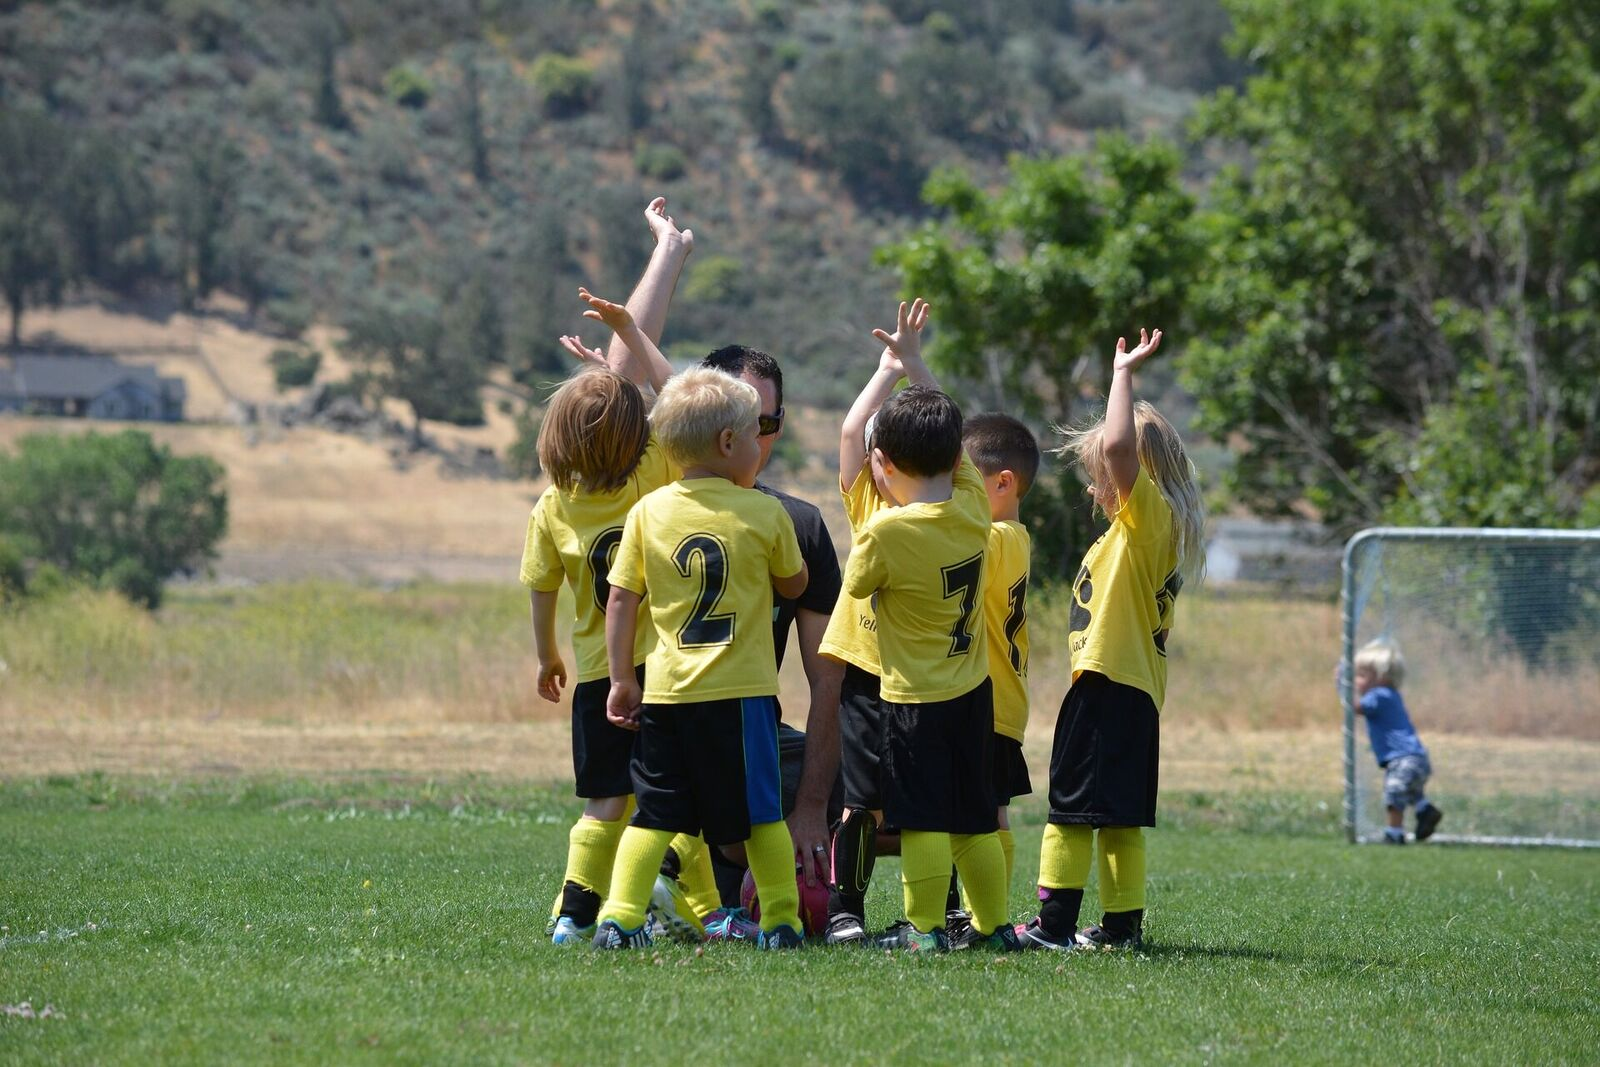 Beginner soccer novice youth football kids new to soccer team age 5 coaching drills private soccer lessons